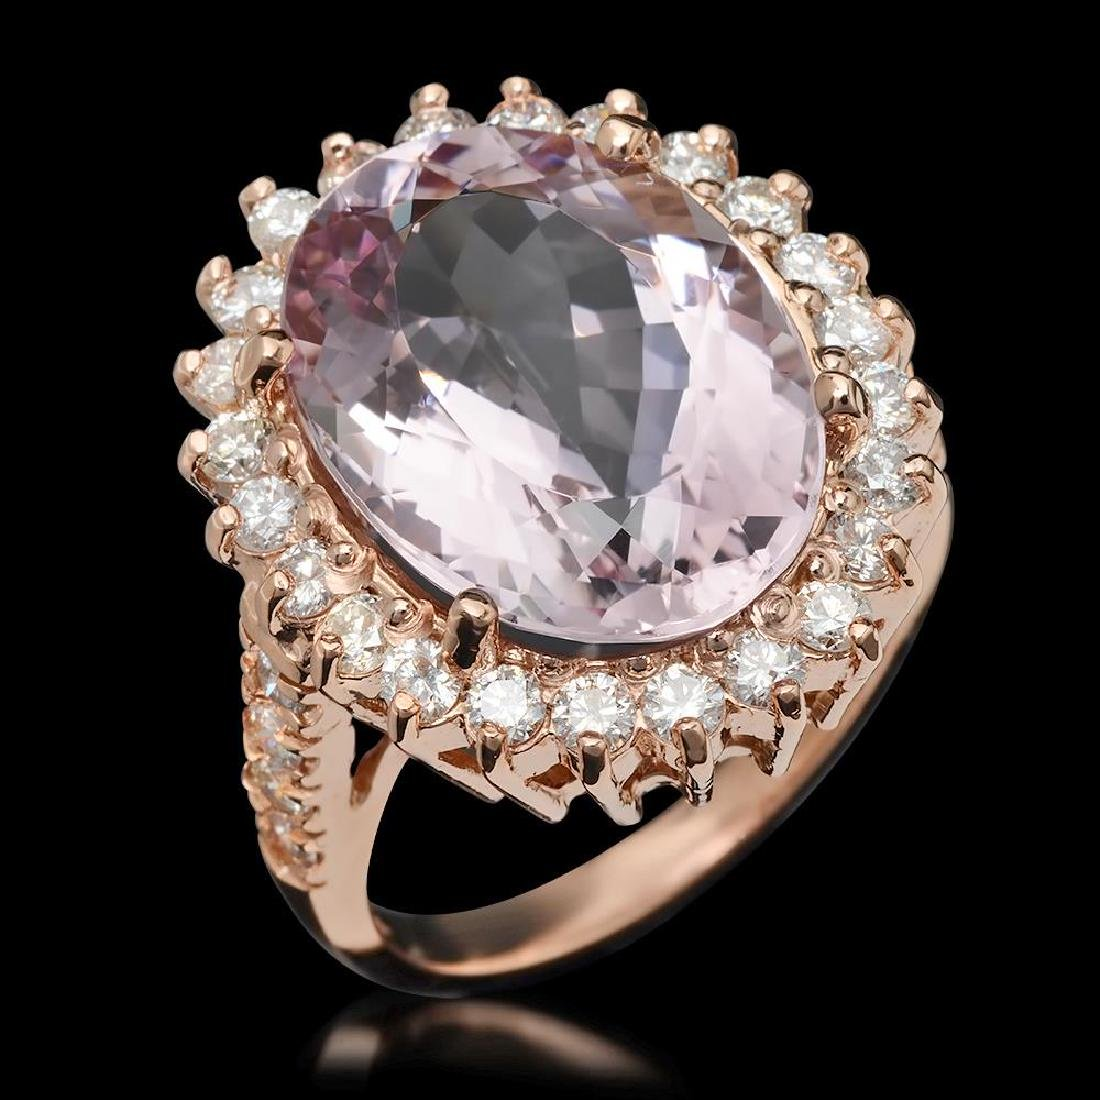 14K Gold 11.06ct Kunzite 1.45ct Diamond Ring